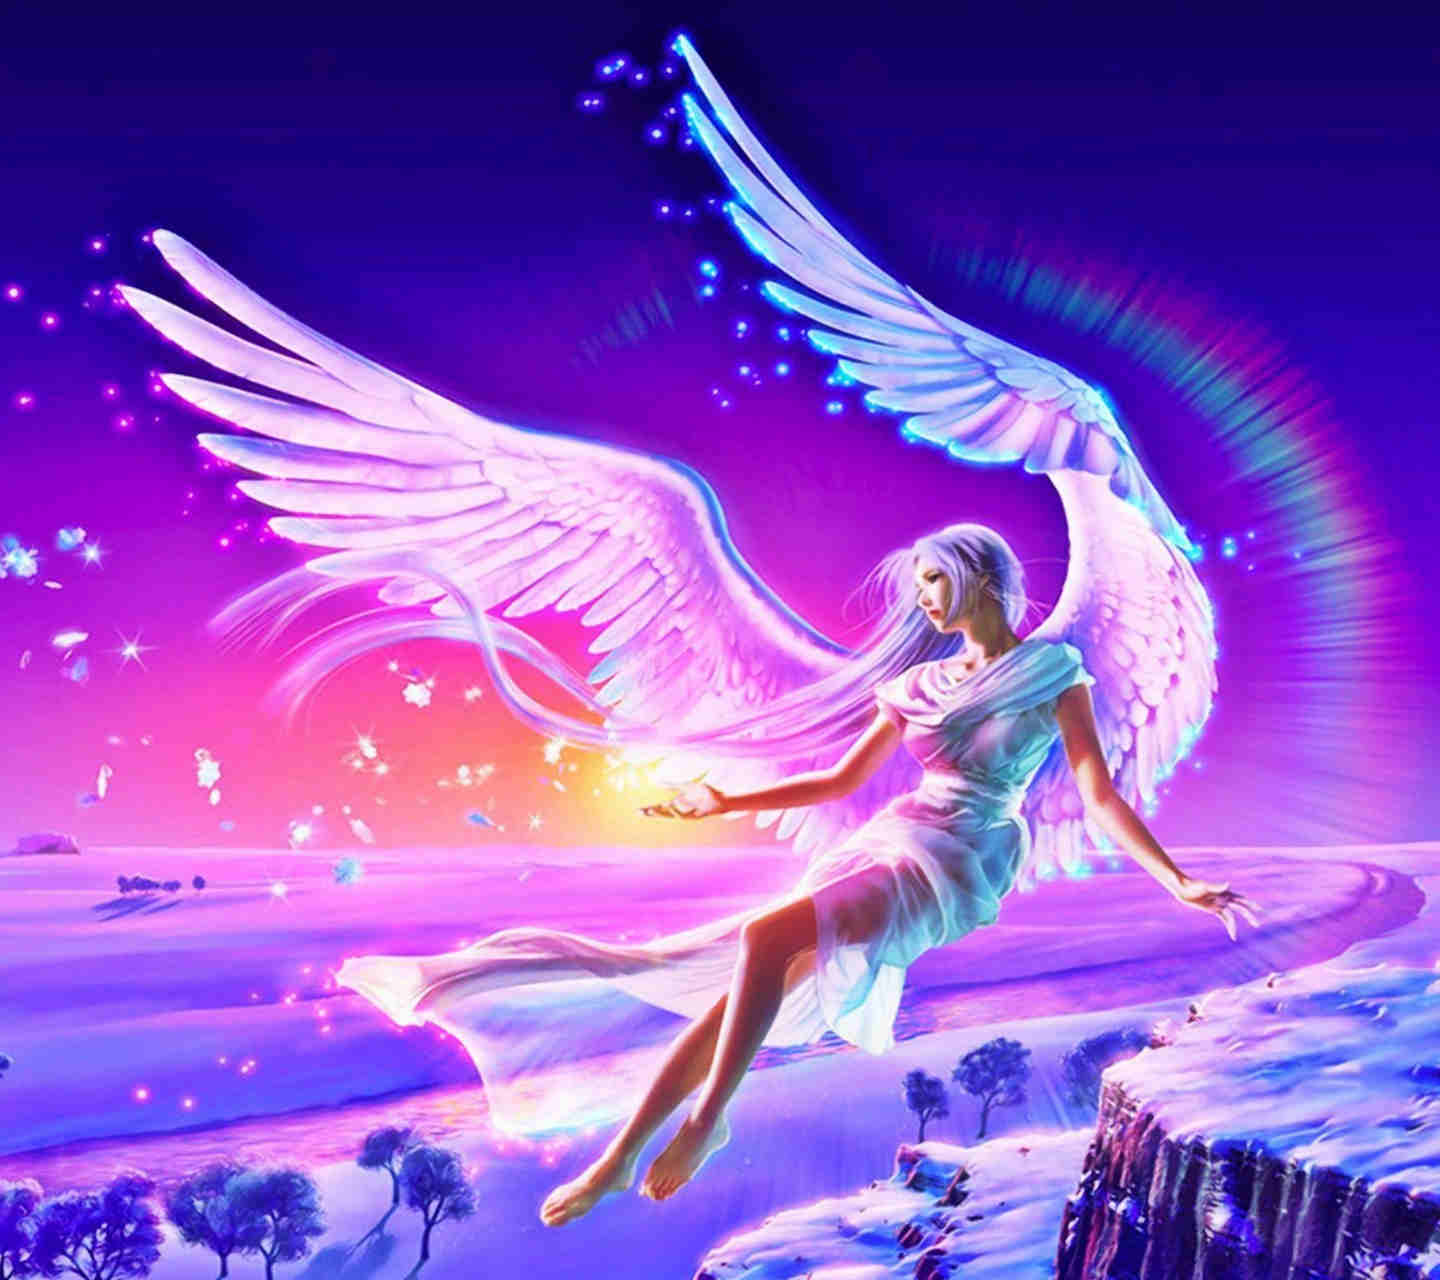 21+ Angel Wallpapers, 3d Backgrounds, Images, Pictures